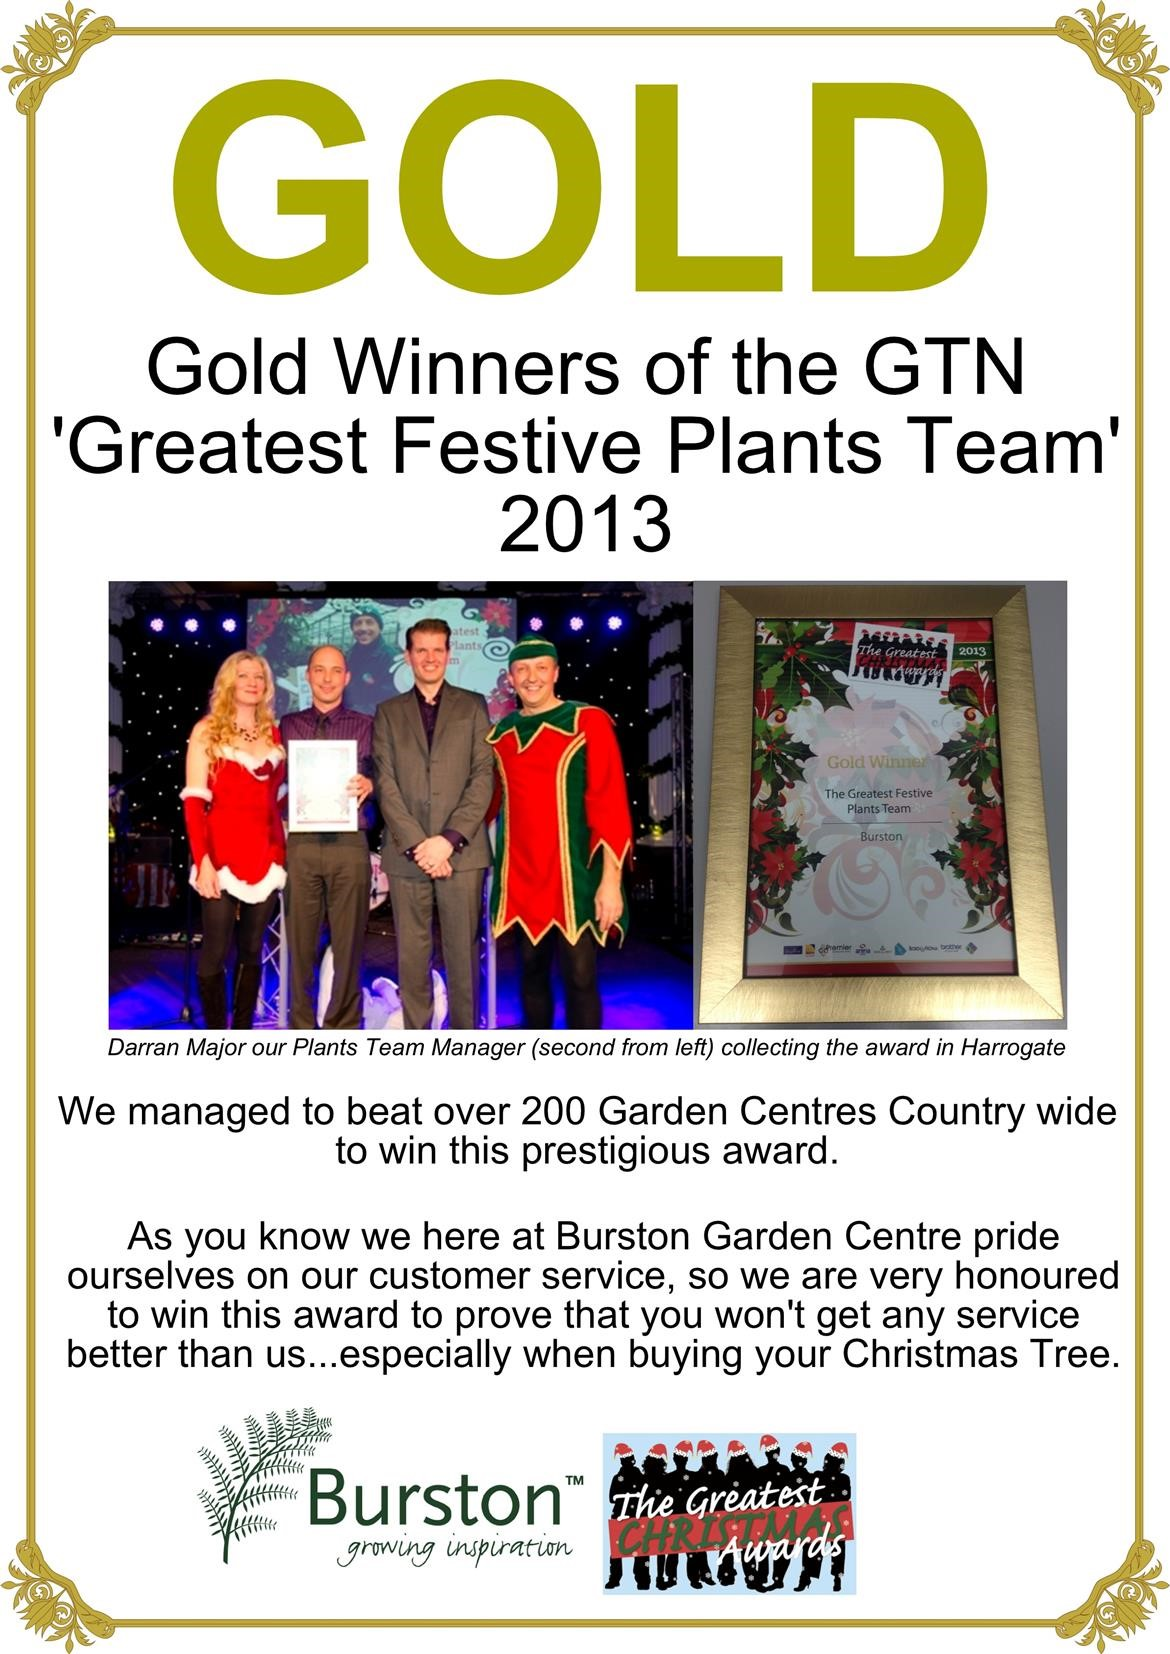 Gold Winners of the GTN 'Greatest Festive Plants Team' 2013 - Burston Garden Centre